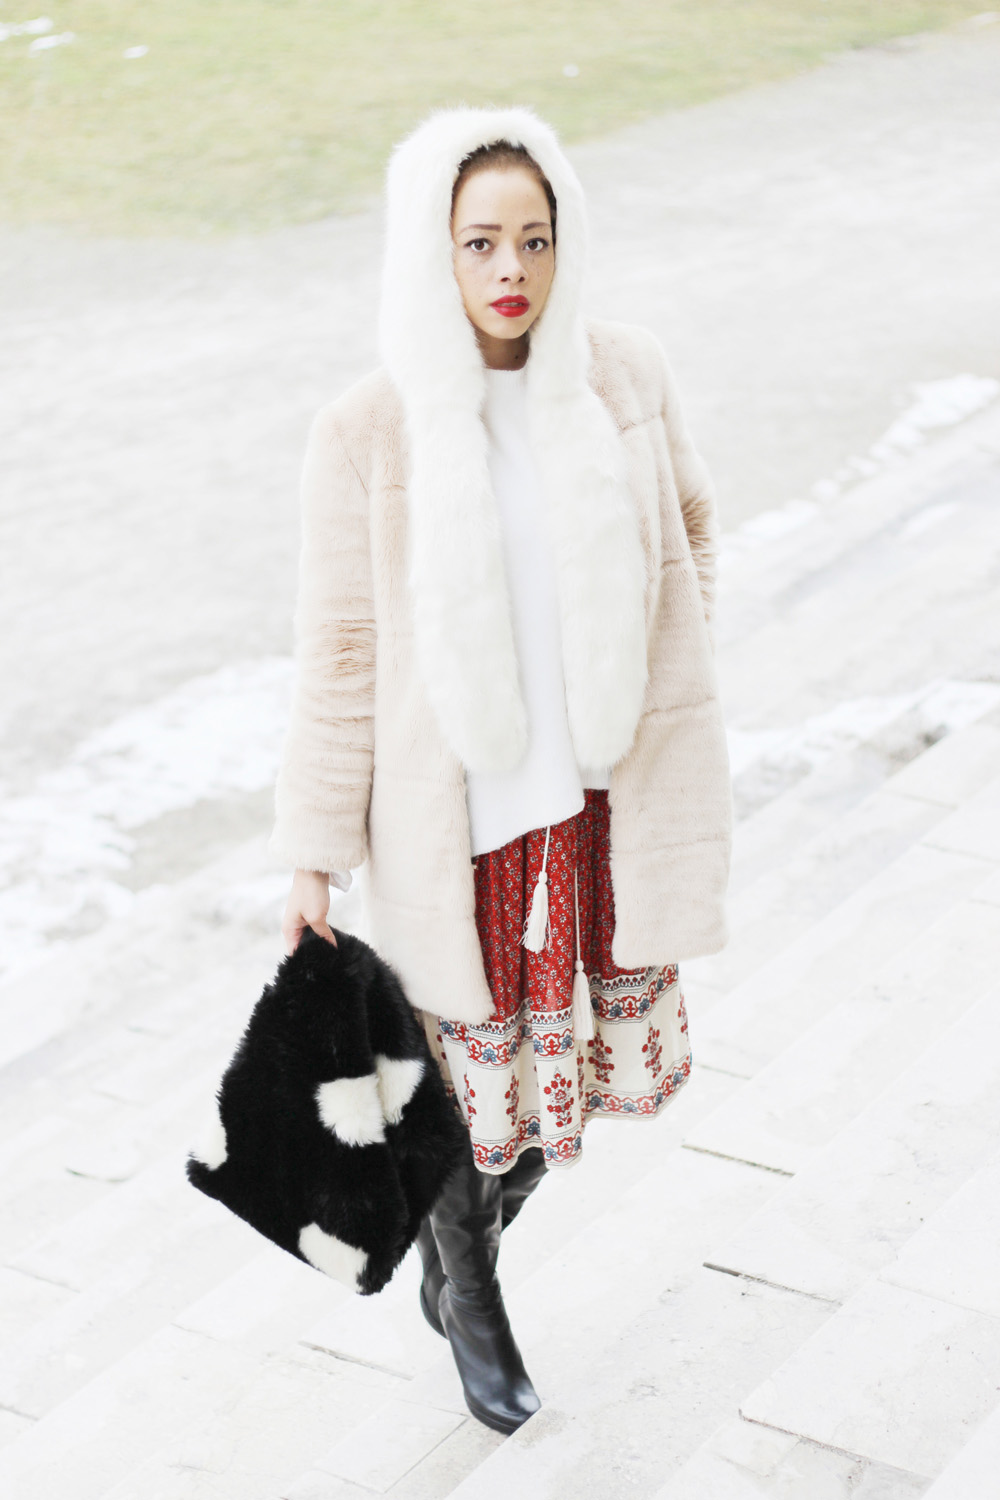 fatimayarie-white-fauxfur-cap-rose-coat-patterned-reddress-img_6805